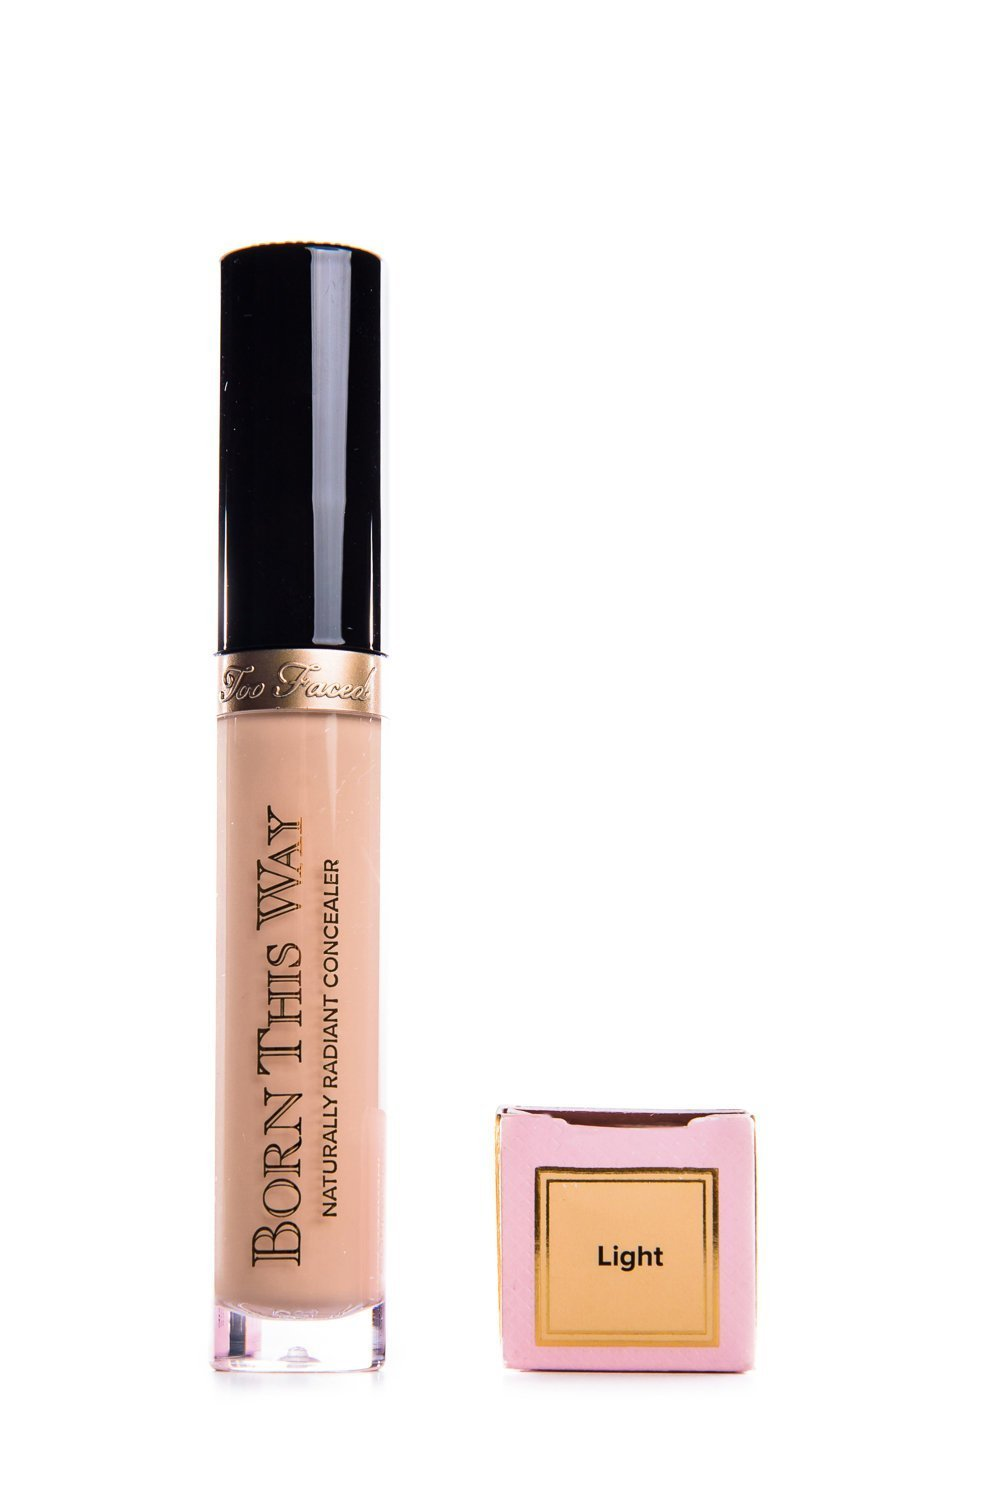 Too Faced Born This Way Naturally Radiant Concealer - Light (Light with Golden Undertones)